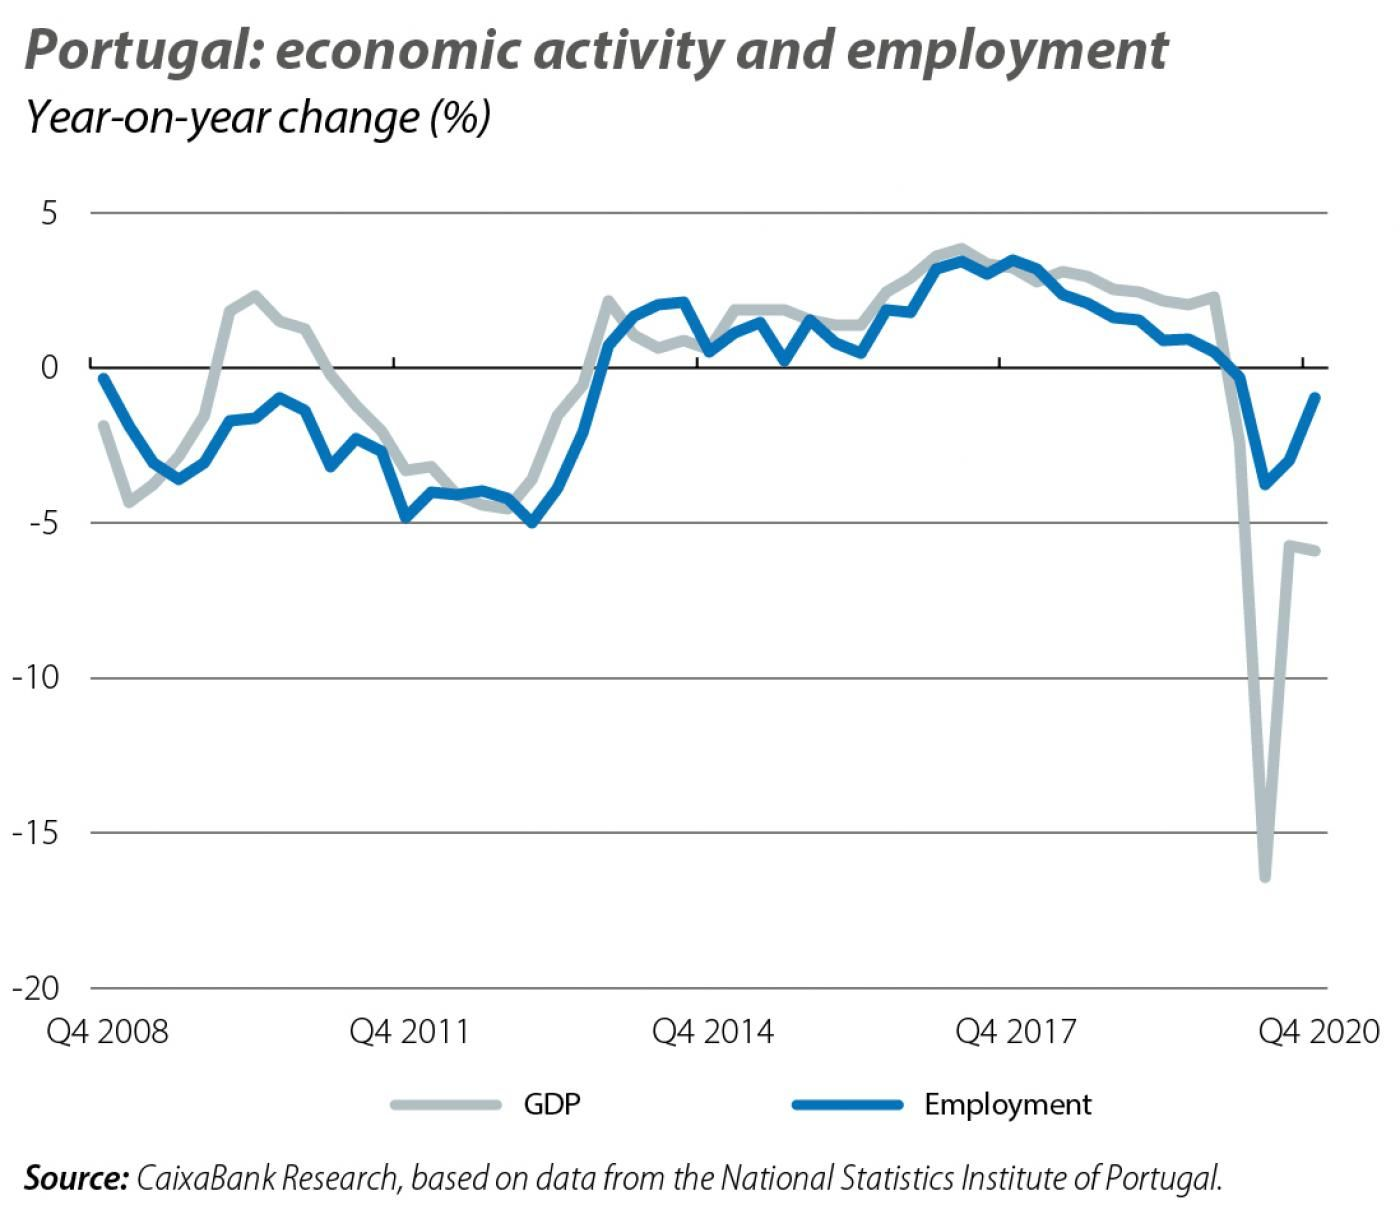 Portugal: economic activity and employment